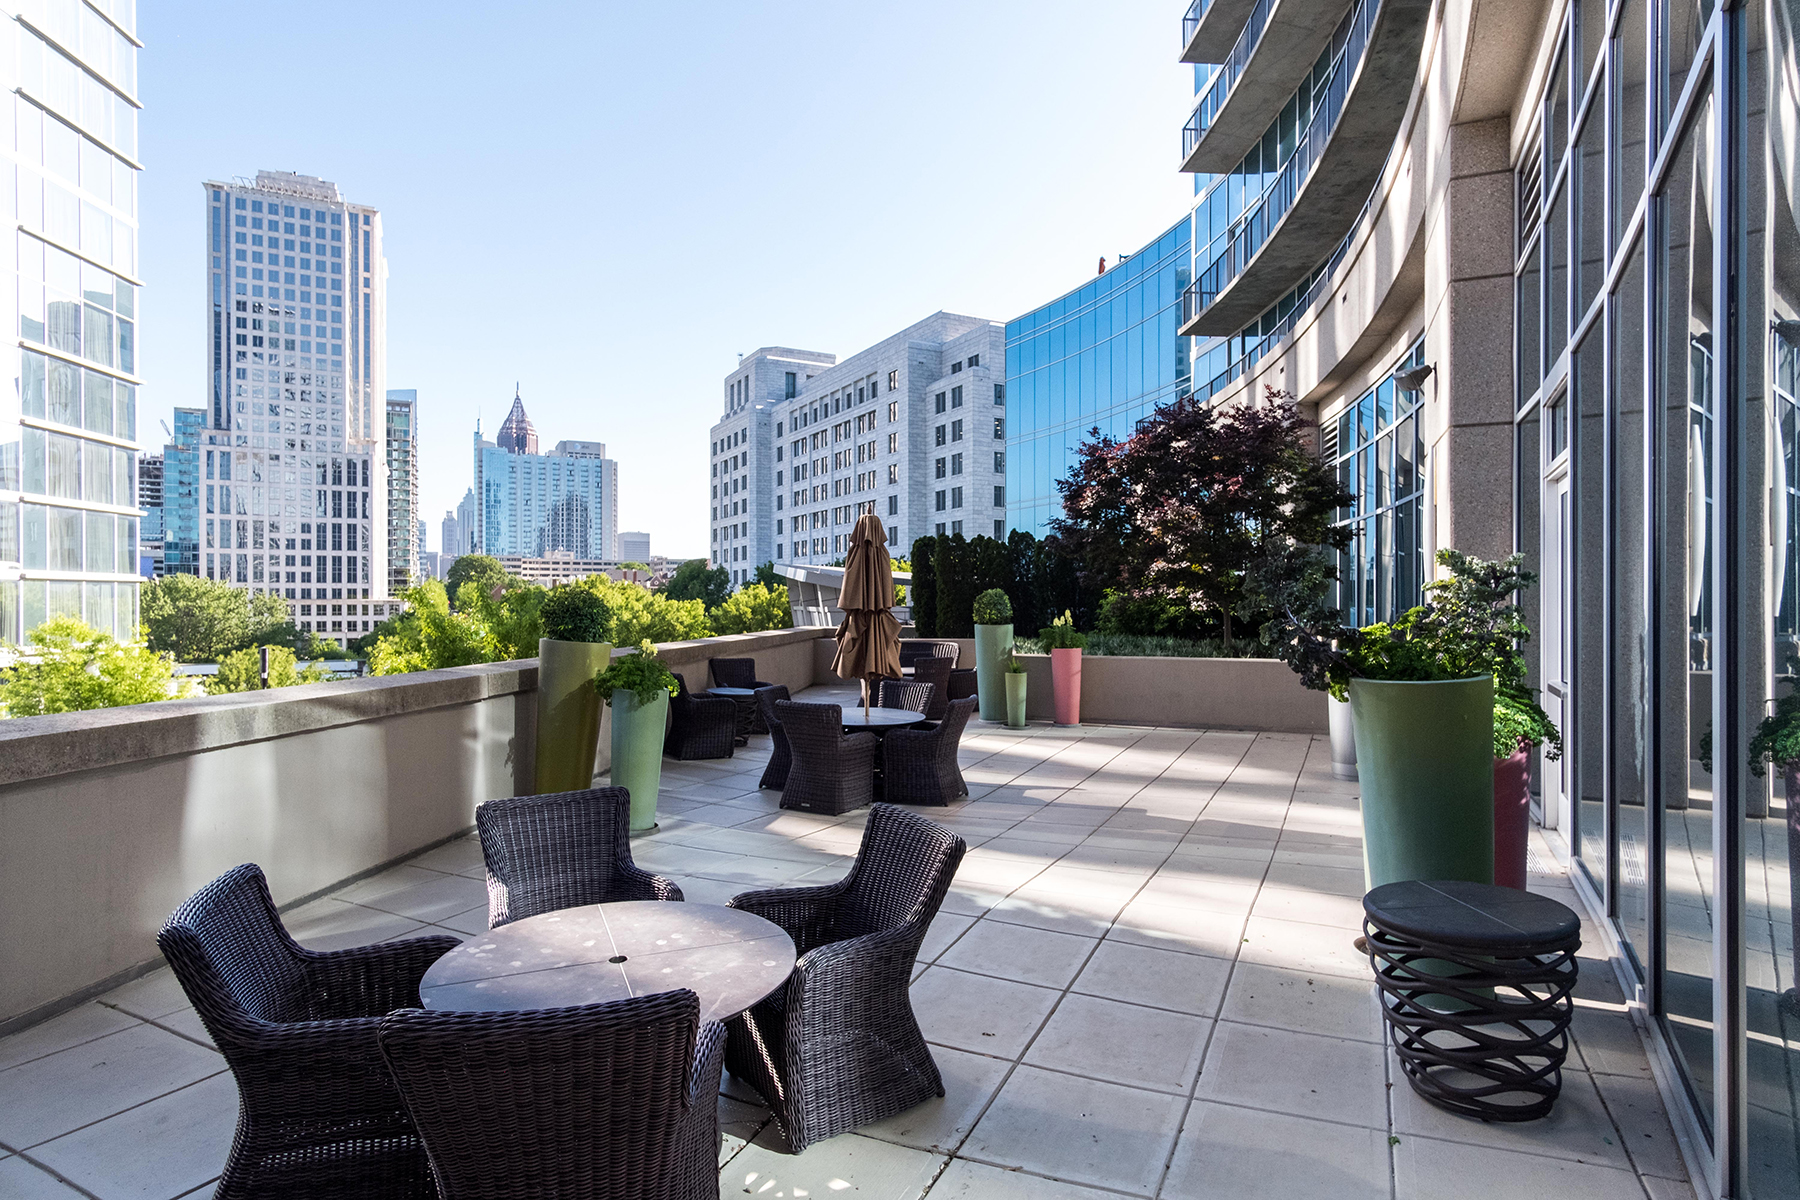 Additional photo for property listing at Stunning Views, Perfect Location! 1080 Peachtree St 1403 Atlanta, Geórgia 30309 Estados Unidos